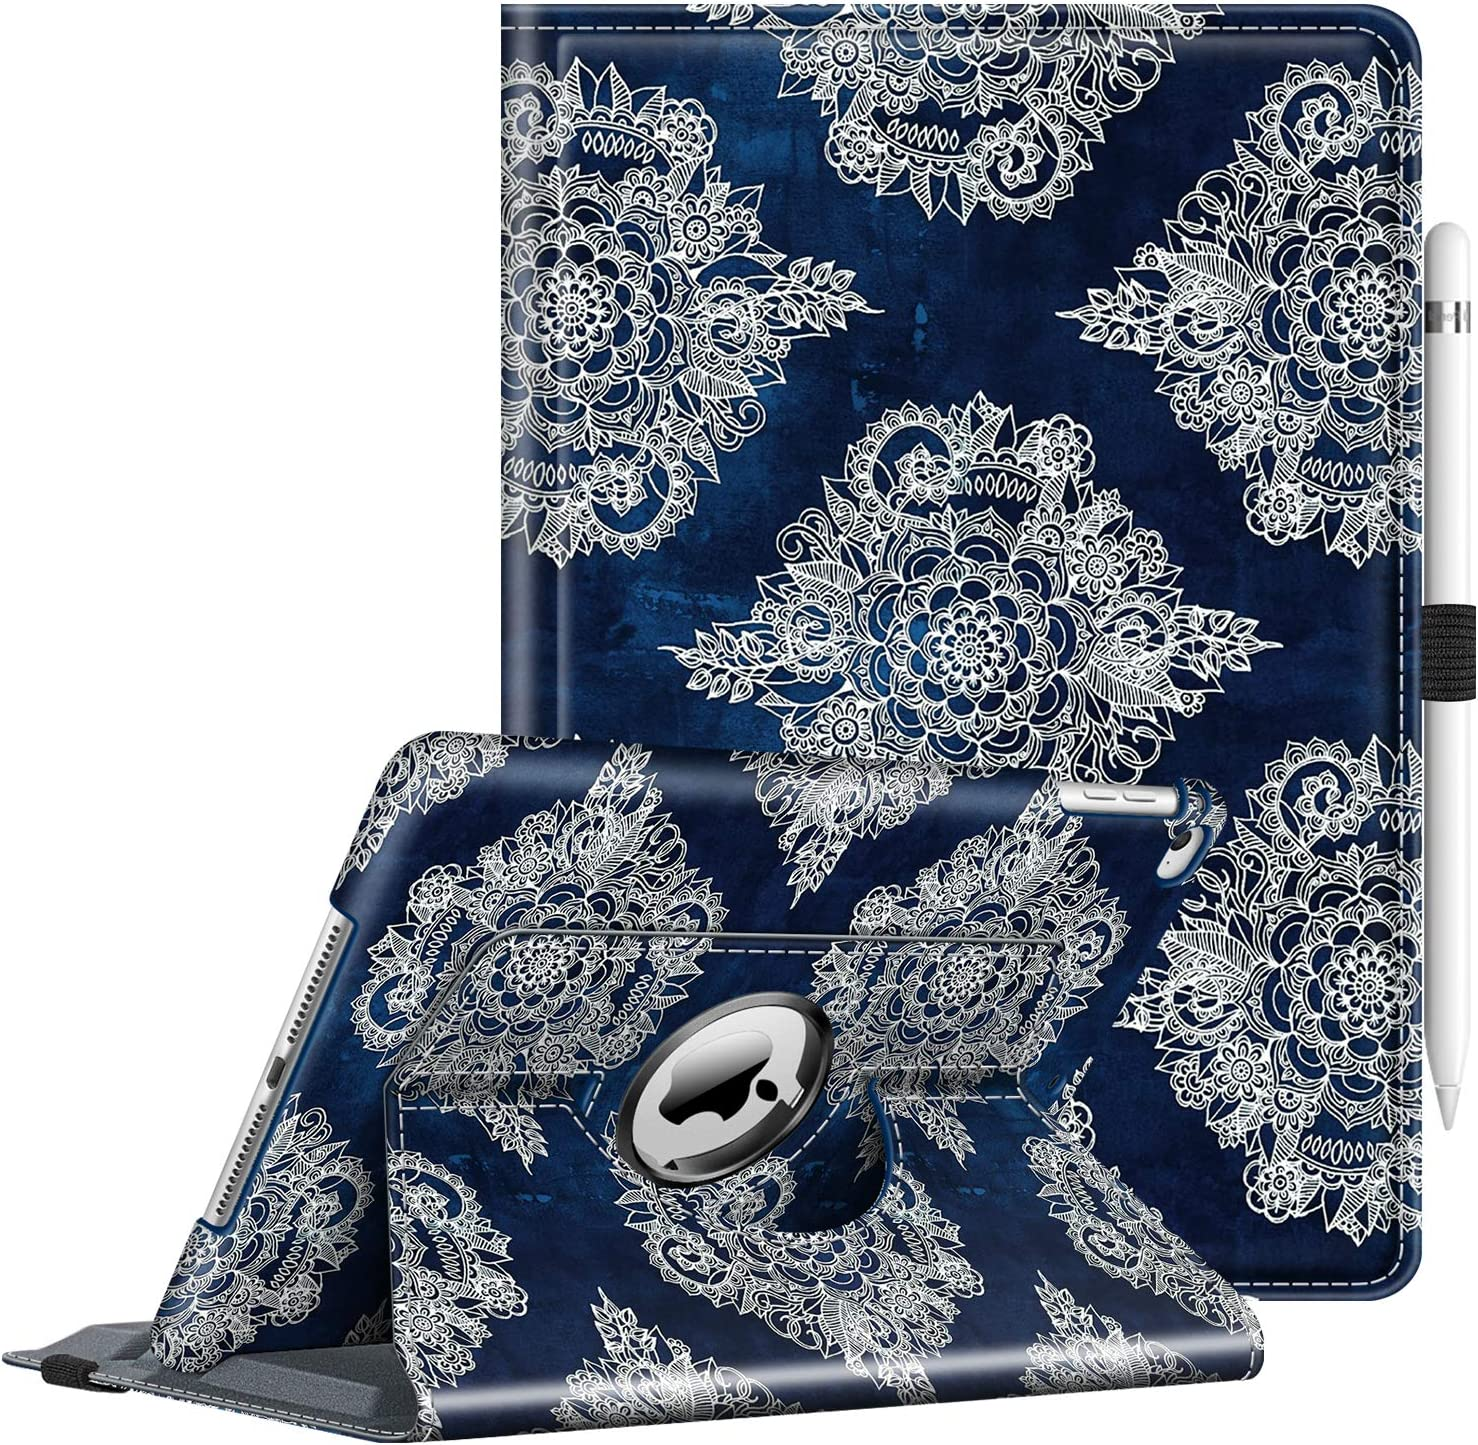 Fintie Case for iPad 9.7 2018 2017 / iPad Air 2 / iPad Air - 360 Degree Rotating Stand Protective Cover with Auto Sleep Wake for iPad 9.7 inch (6th Gen, 5th Gen) / iPad Air, Indigo Dreams